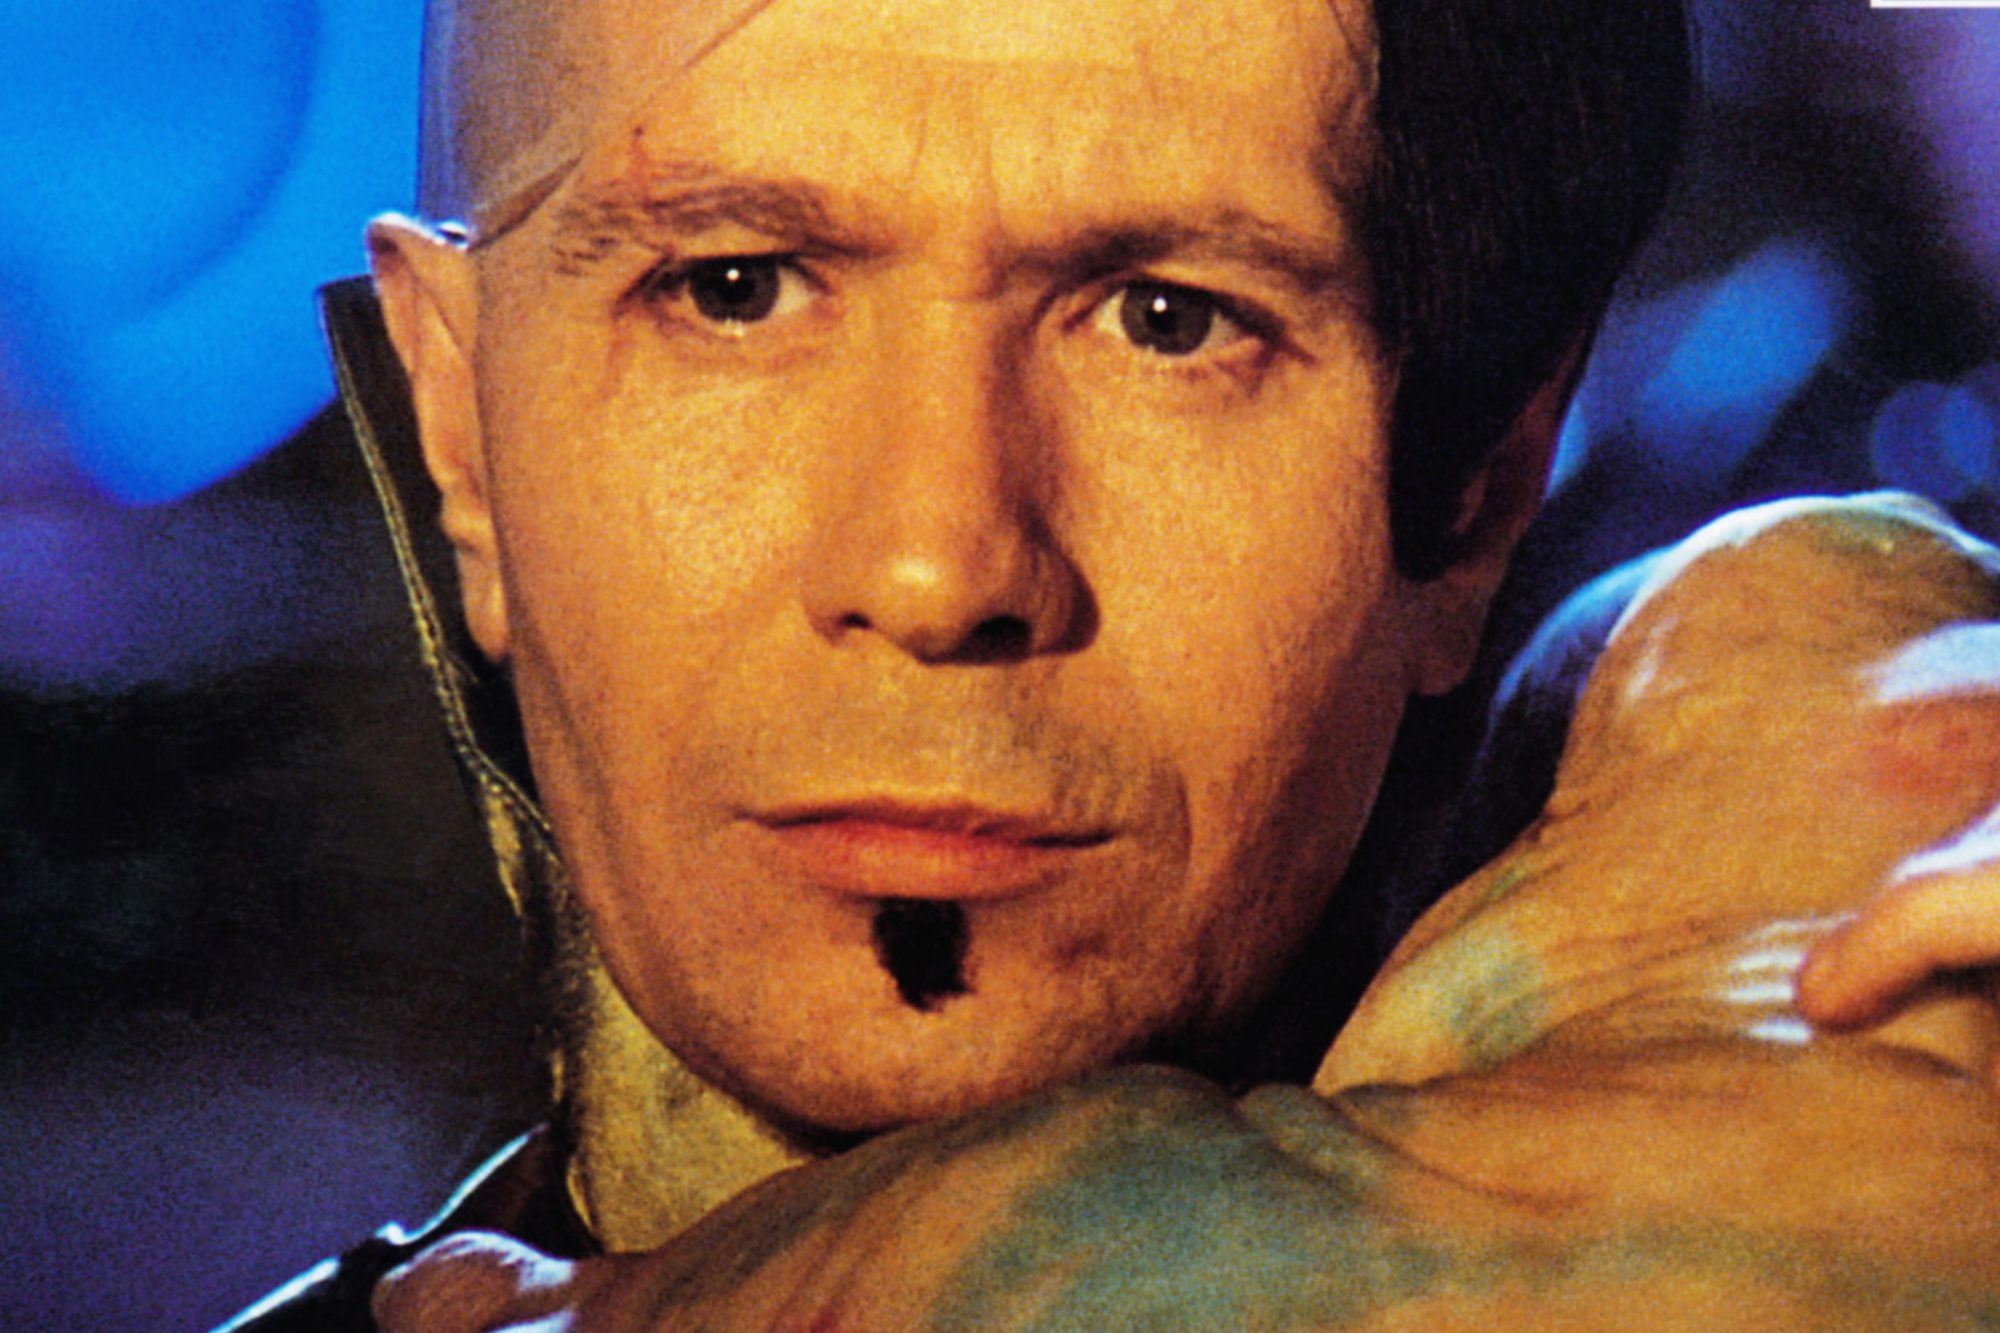 THE FIFTH ELEMENT, (aka DAS FUNFTE ELEMENT), Gary Oldman, 1997, © Columbia/courtesy Everett Collecti